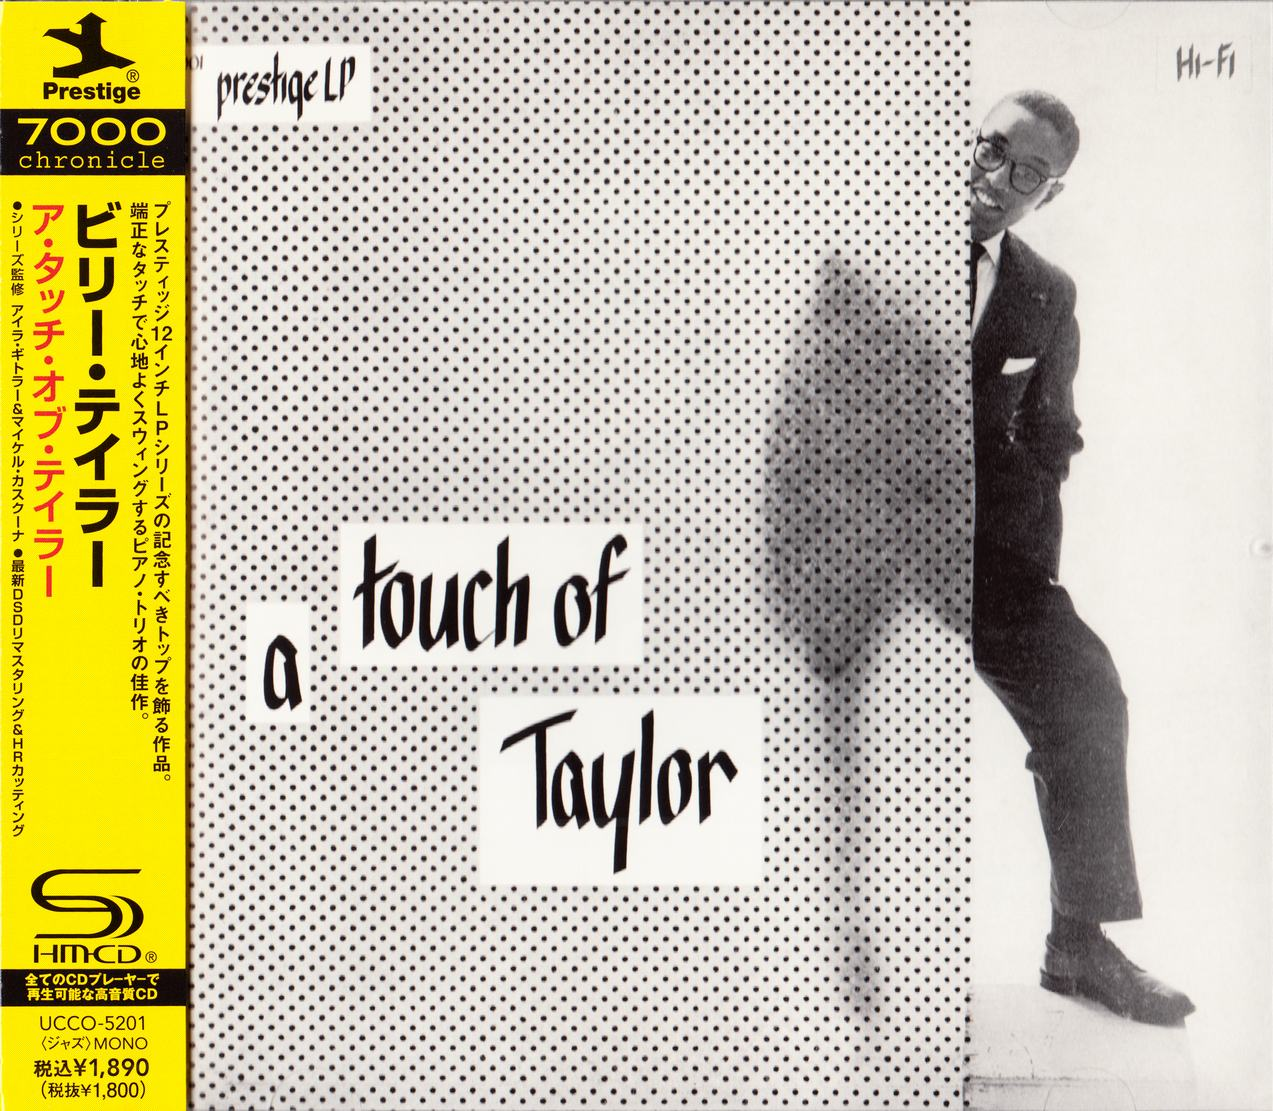 The Billy Taylor Trio - A Touch Of Taylor (1955) {2013 Japan Prestige 7000 Chronicle SHM-CD HR Cutting Series UCCO-5201}